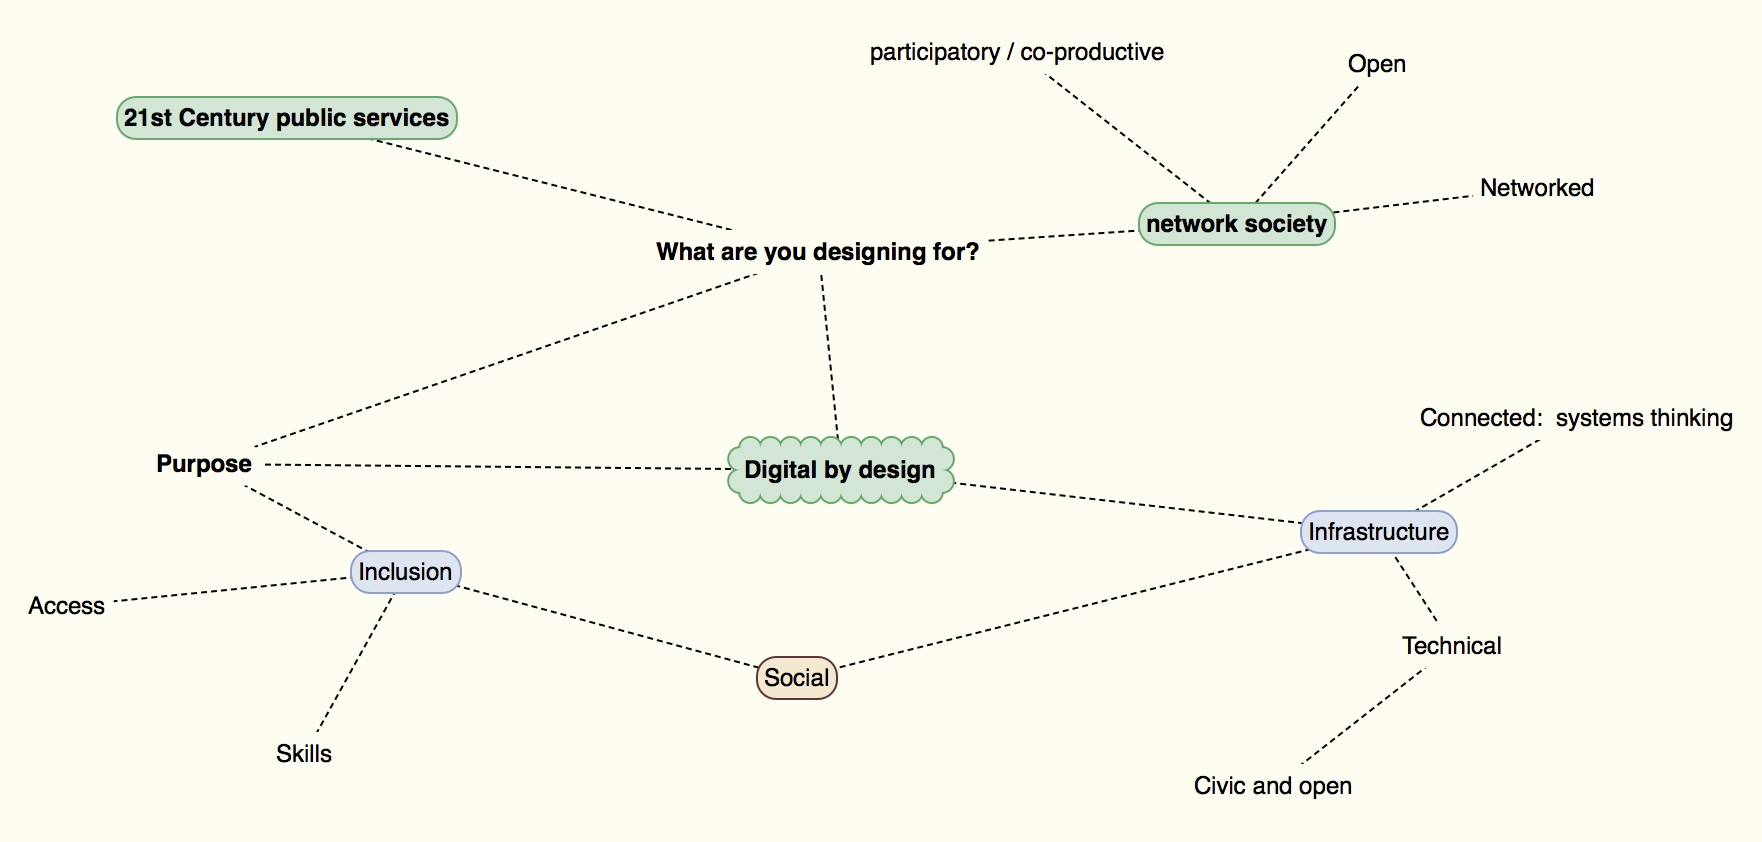 mind map on the question of digital by design